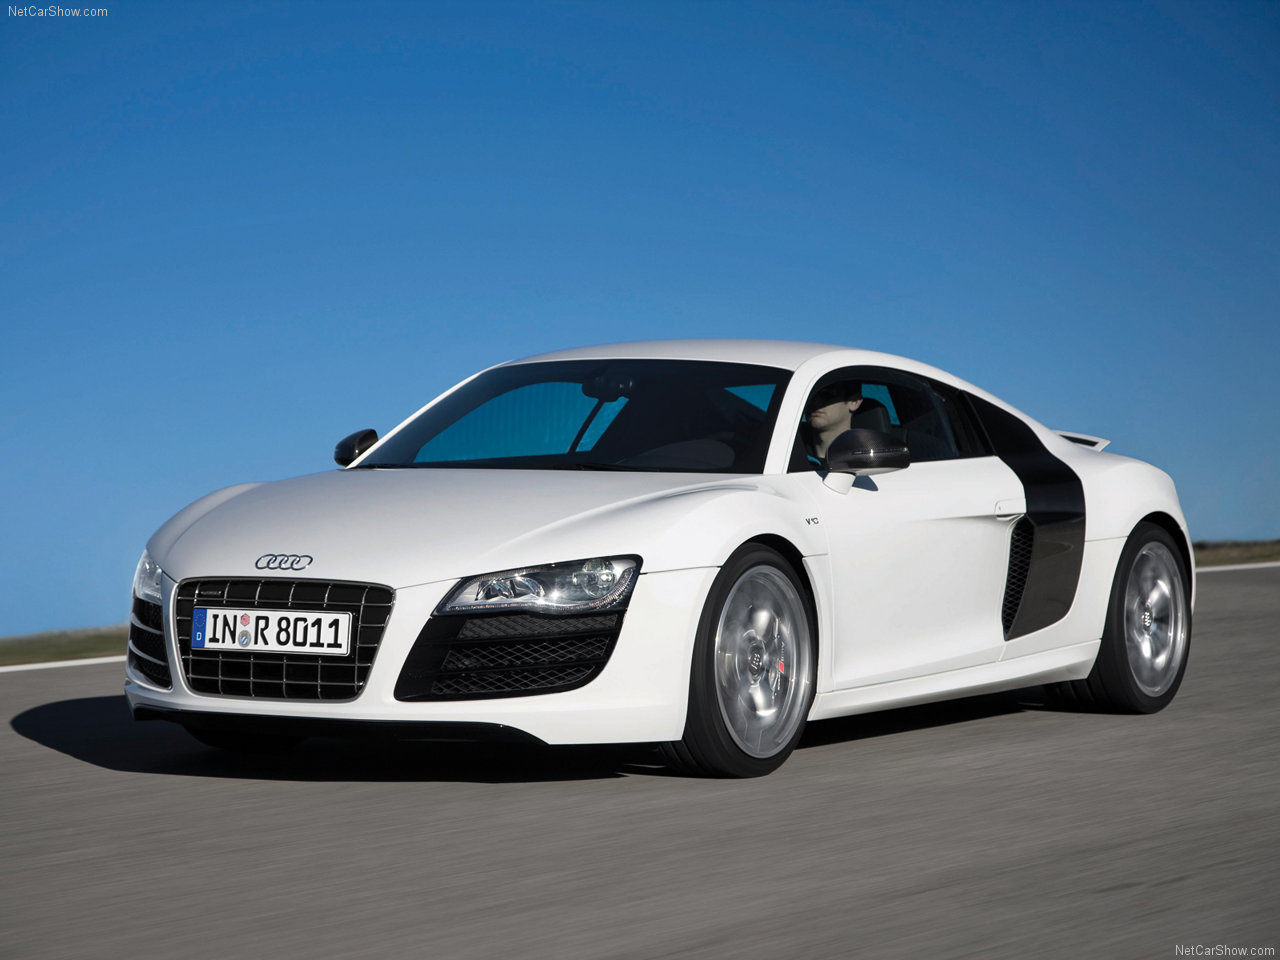 top white audi r8 images & wallpapers clytemnestra fontes